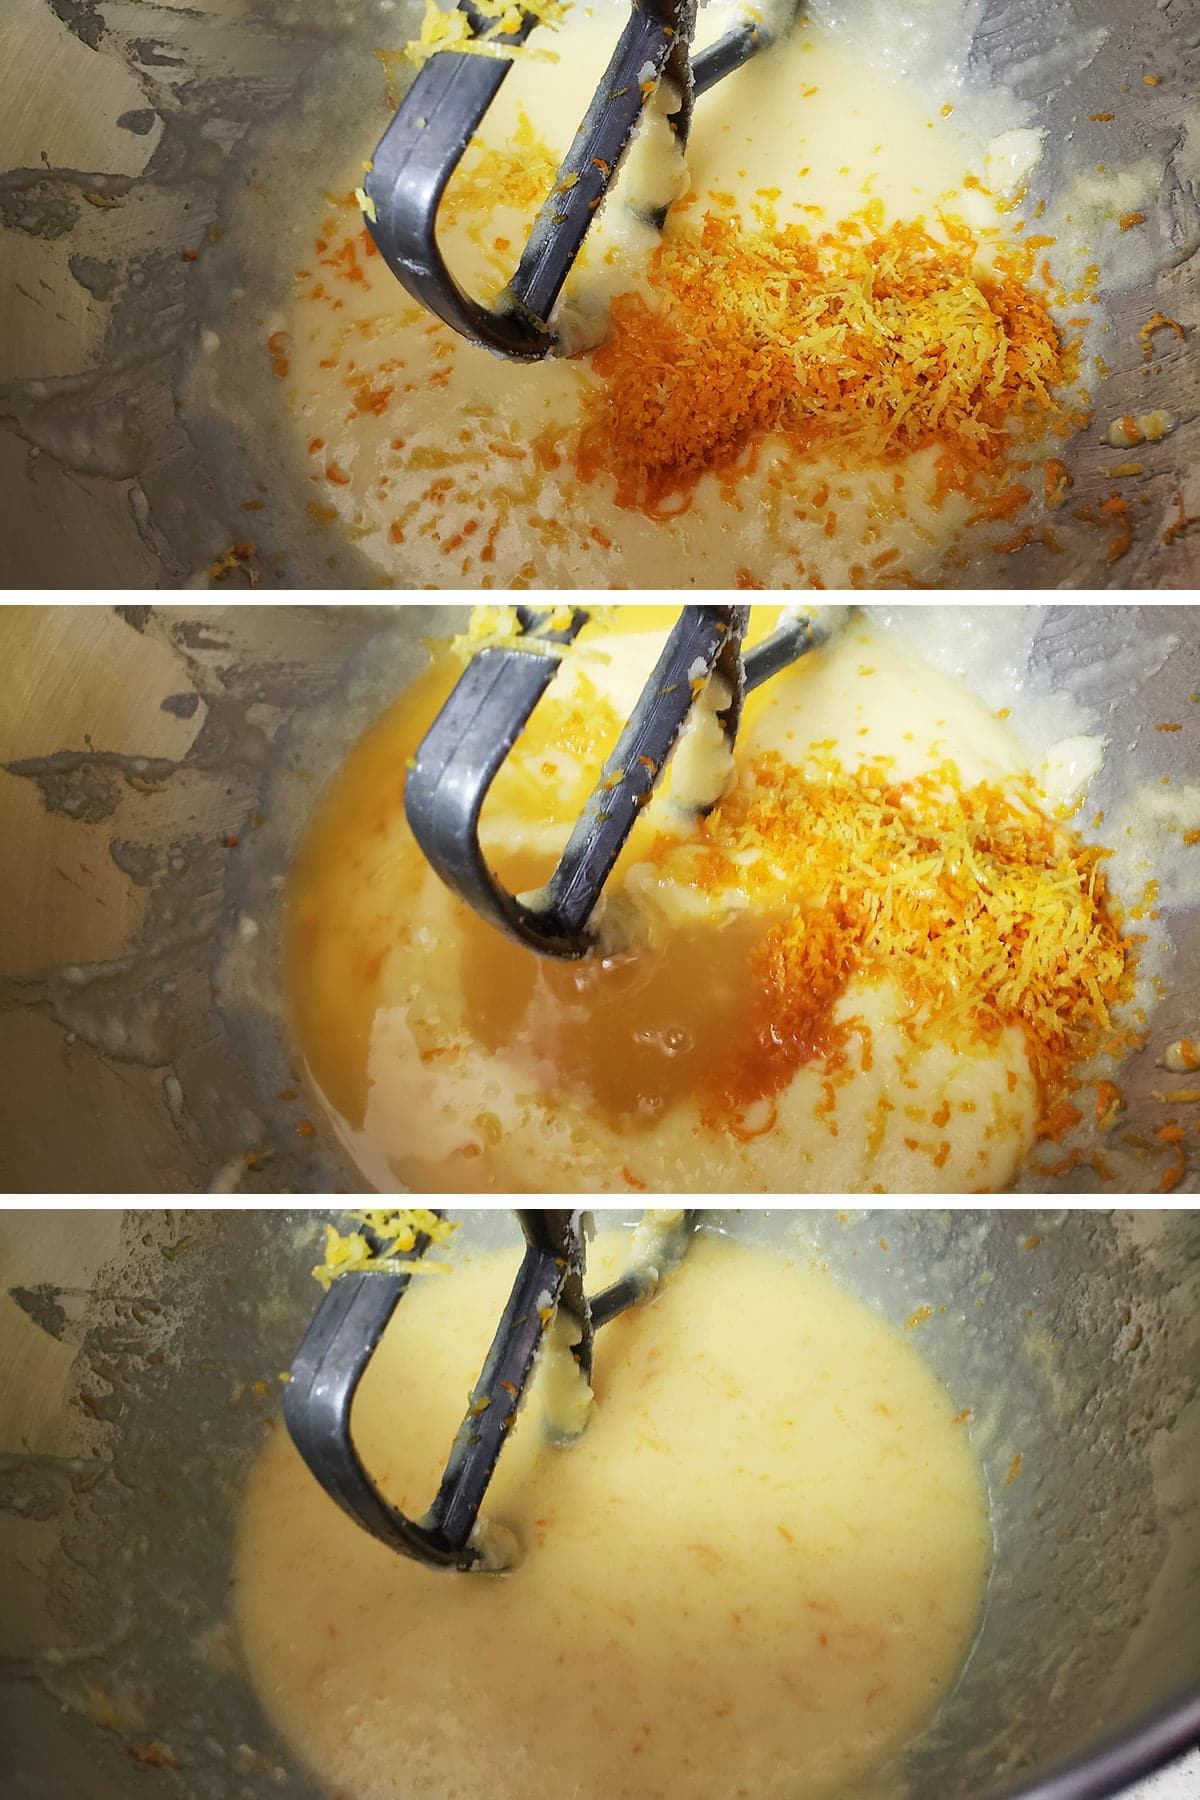 A 3 part compilation image showing zest and juice being added to the batter, and the smooth yellow batter after mixing.